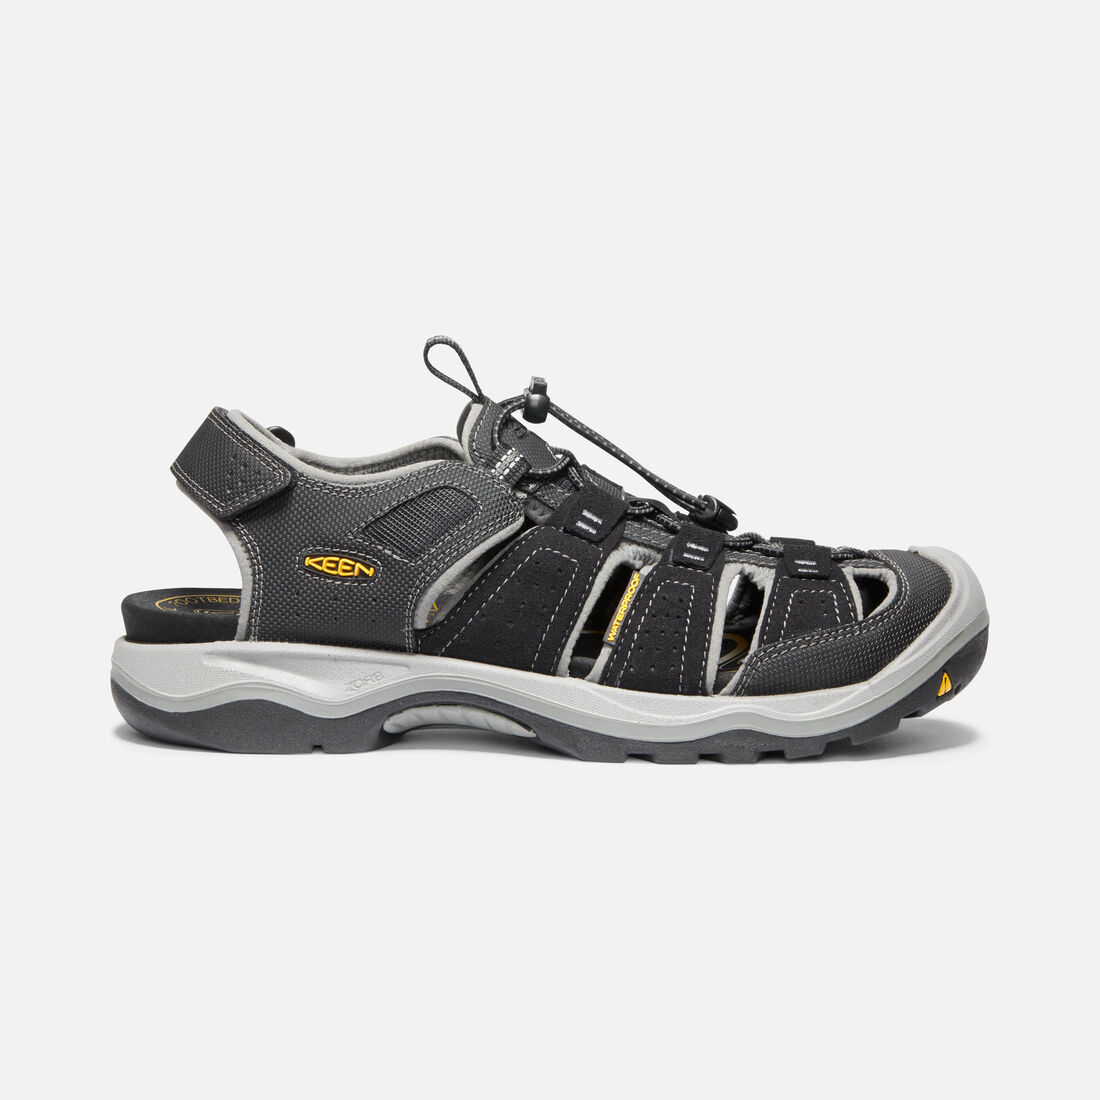 MEN'S RIALTO H2 SANDALS in Black/Gargoyle - large view.